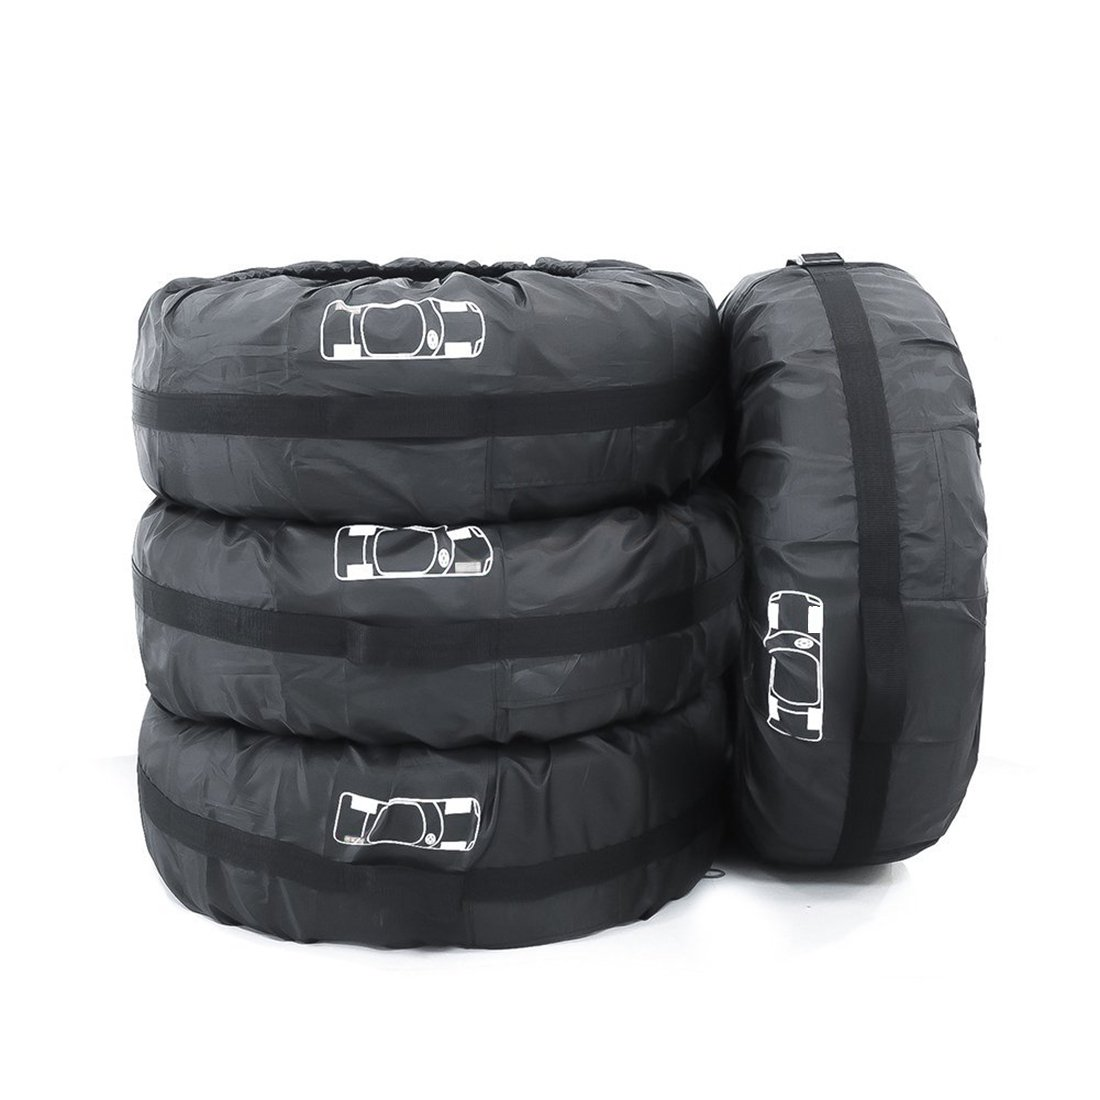 4 Pcs Tire Tote Covers FLR 80cm/31in Diameter Adjustable Foldable Seasonal Spare Tire Cover Dust Cover Wheel Protection Covers for Car Off Road Truck SUV (80cm/31in) WCH AUTO ACCESSORIES LIMITED